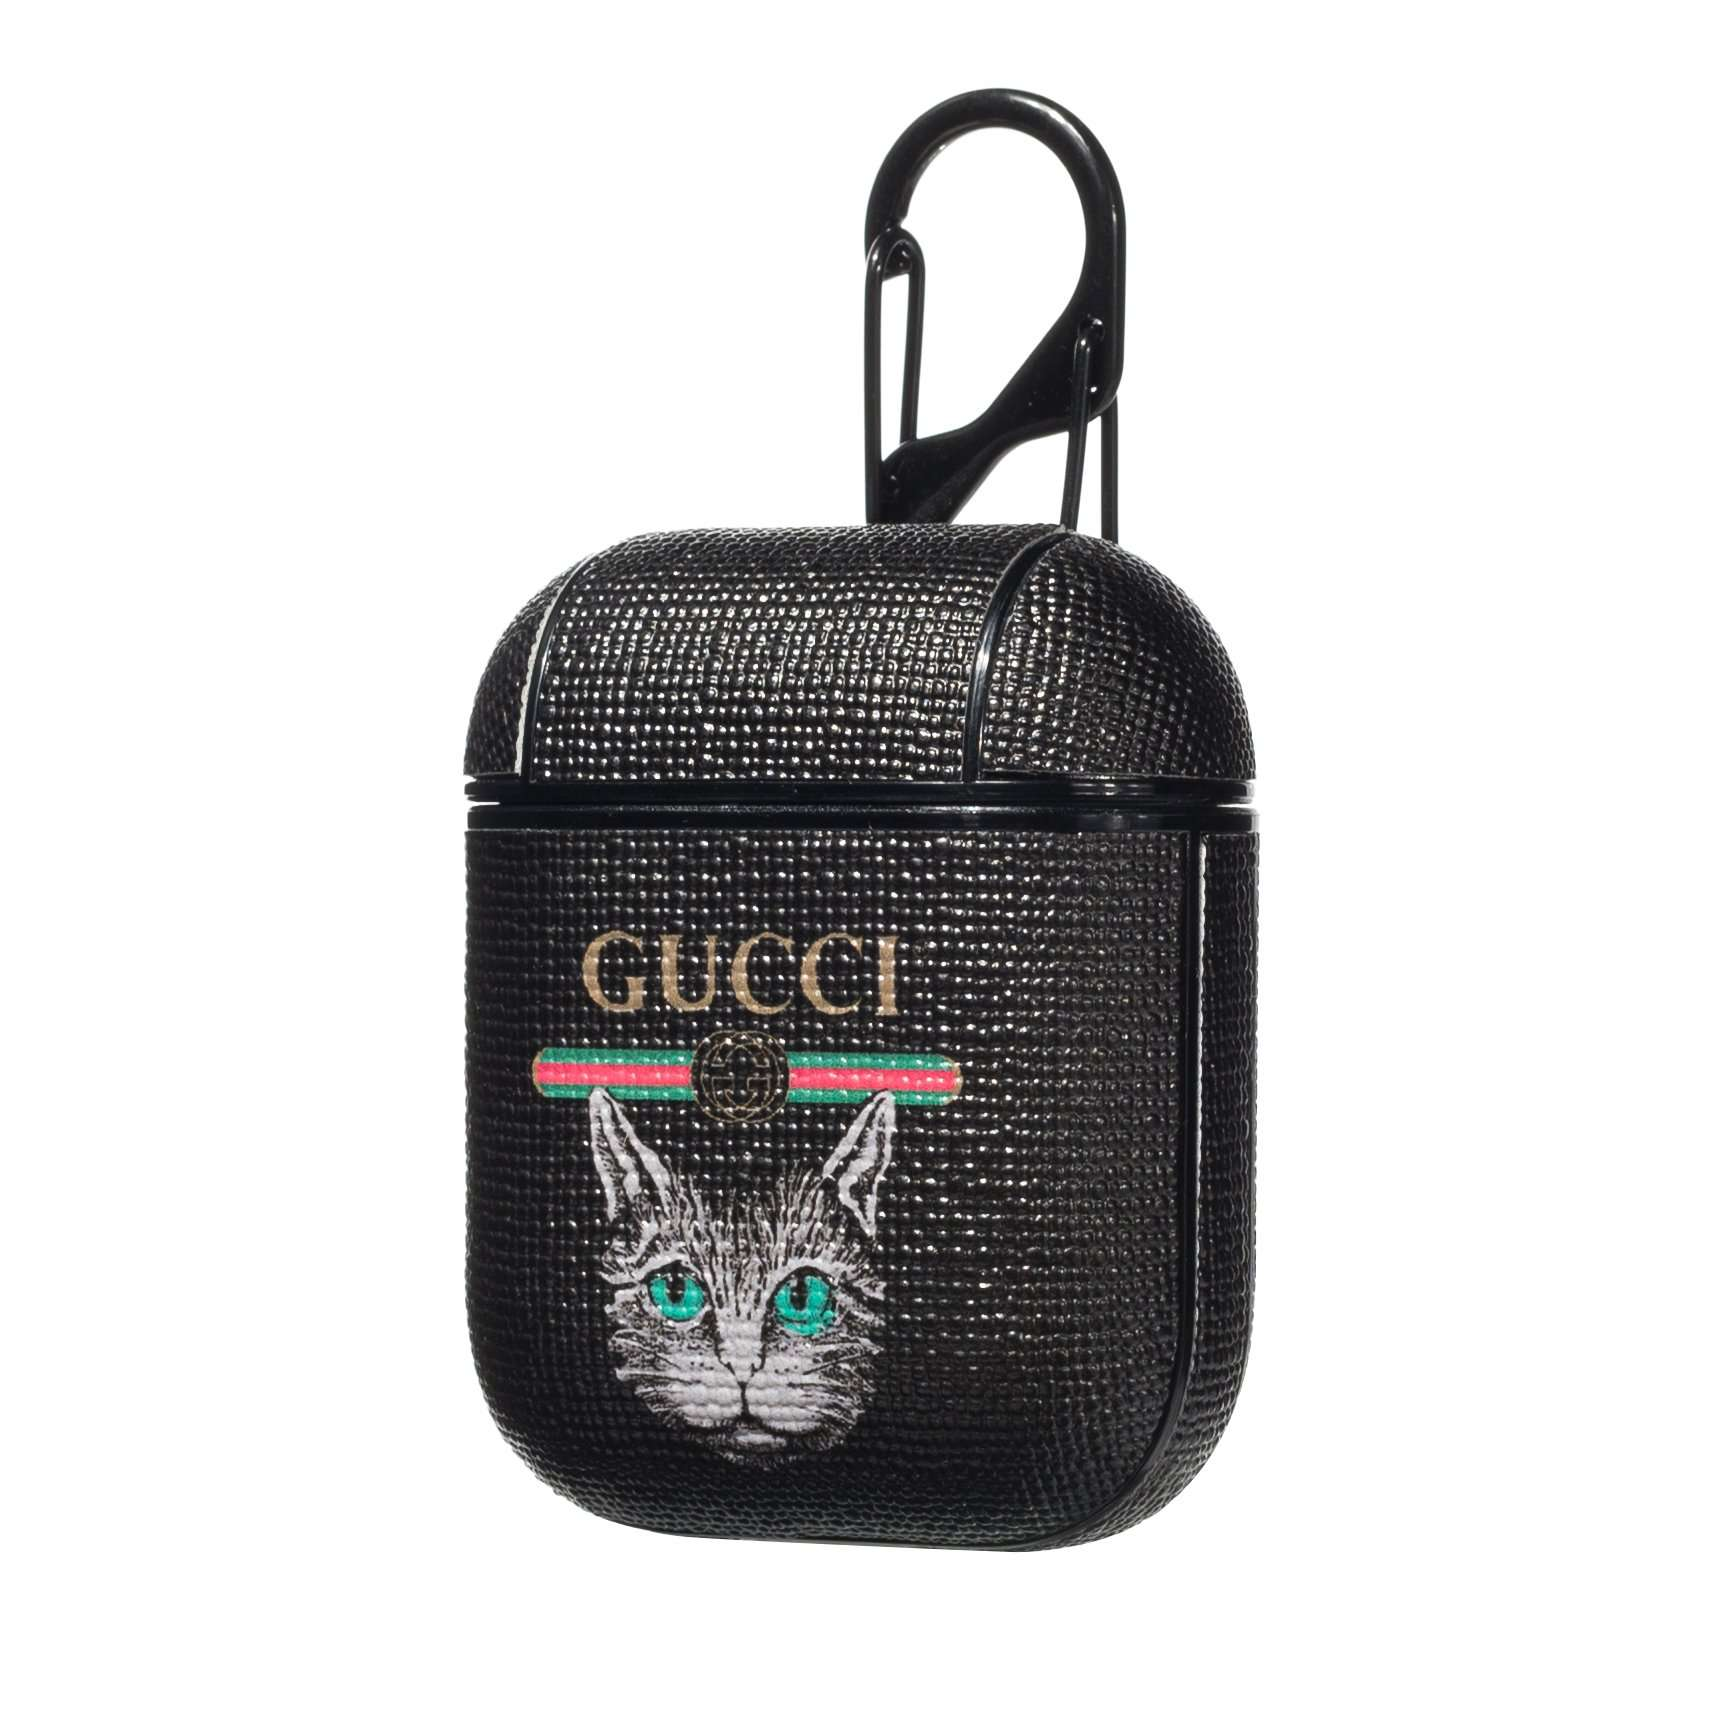 Gucci Cat AirPods Leather Protective Shockproof Case